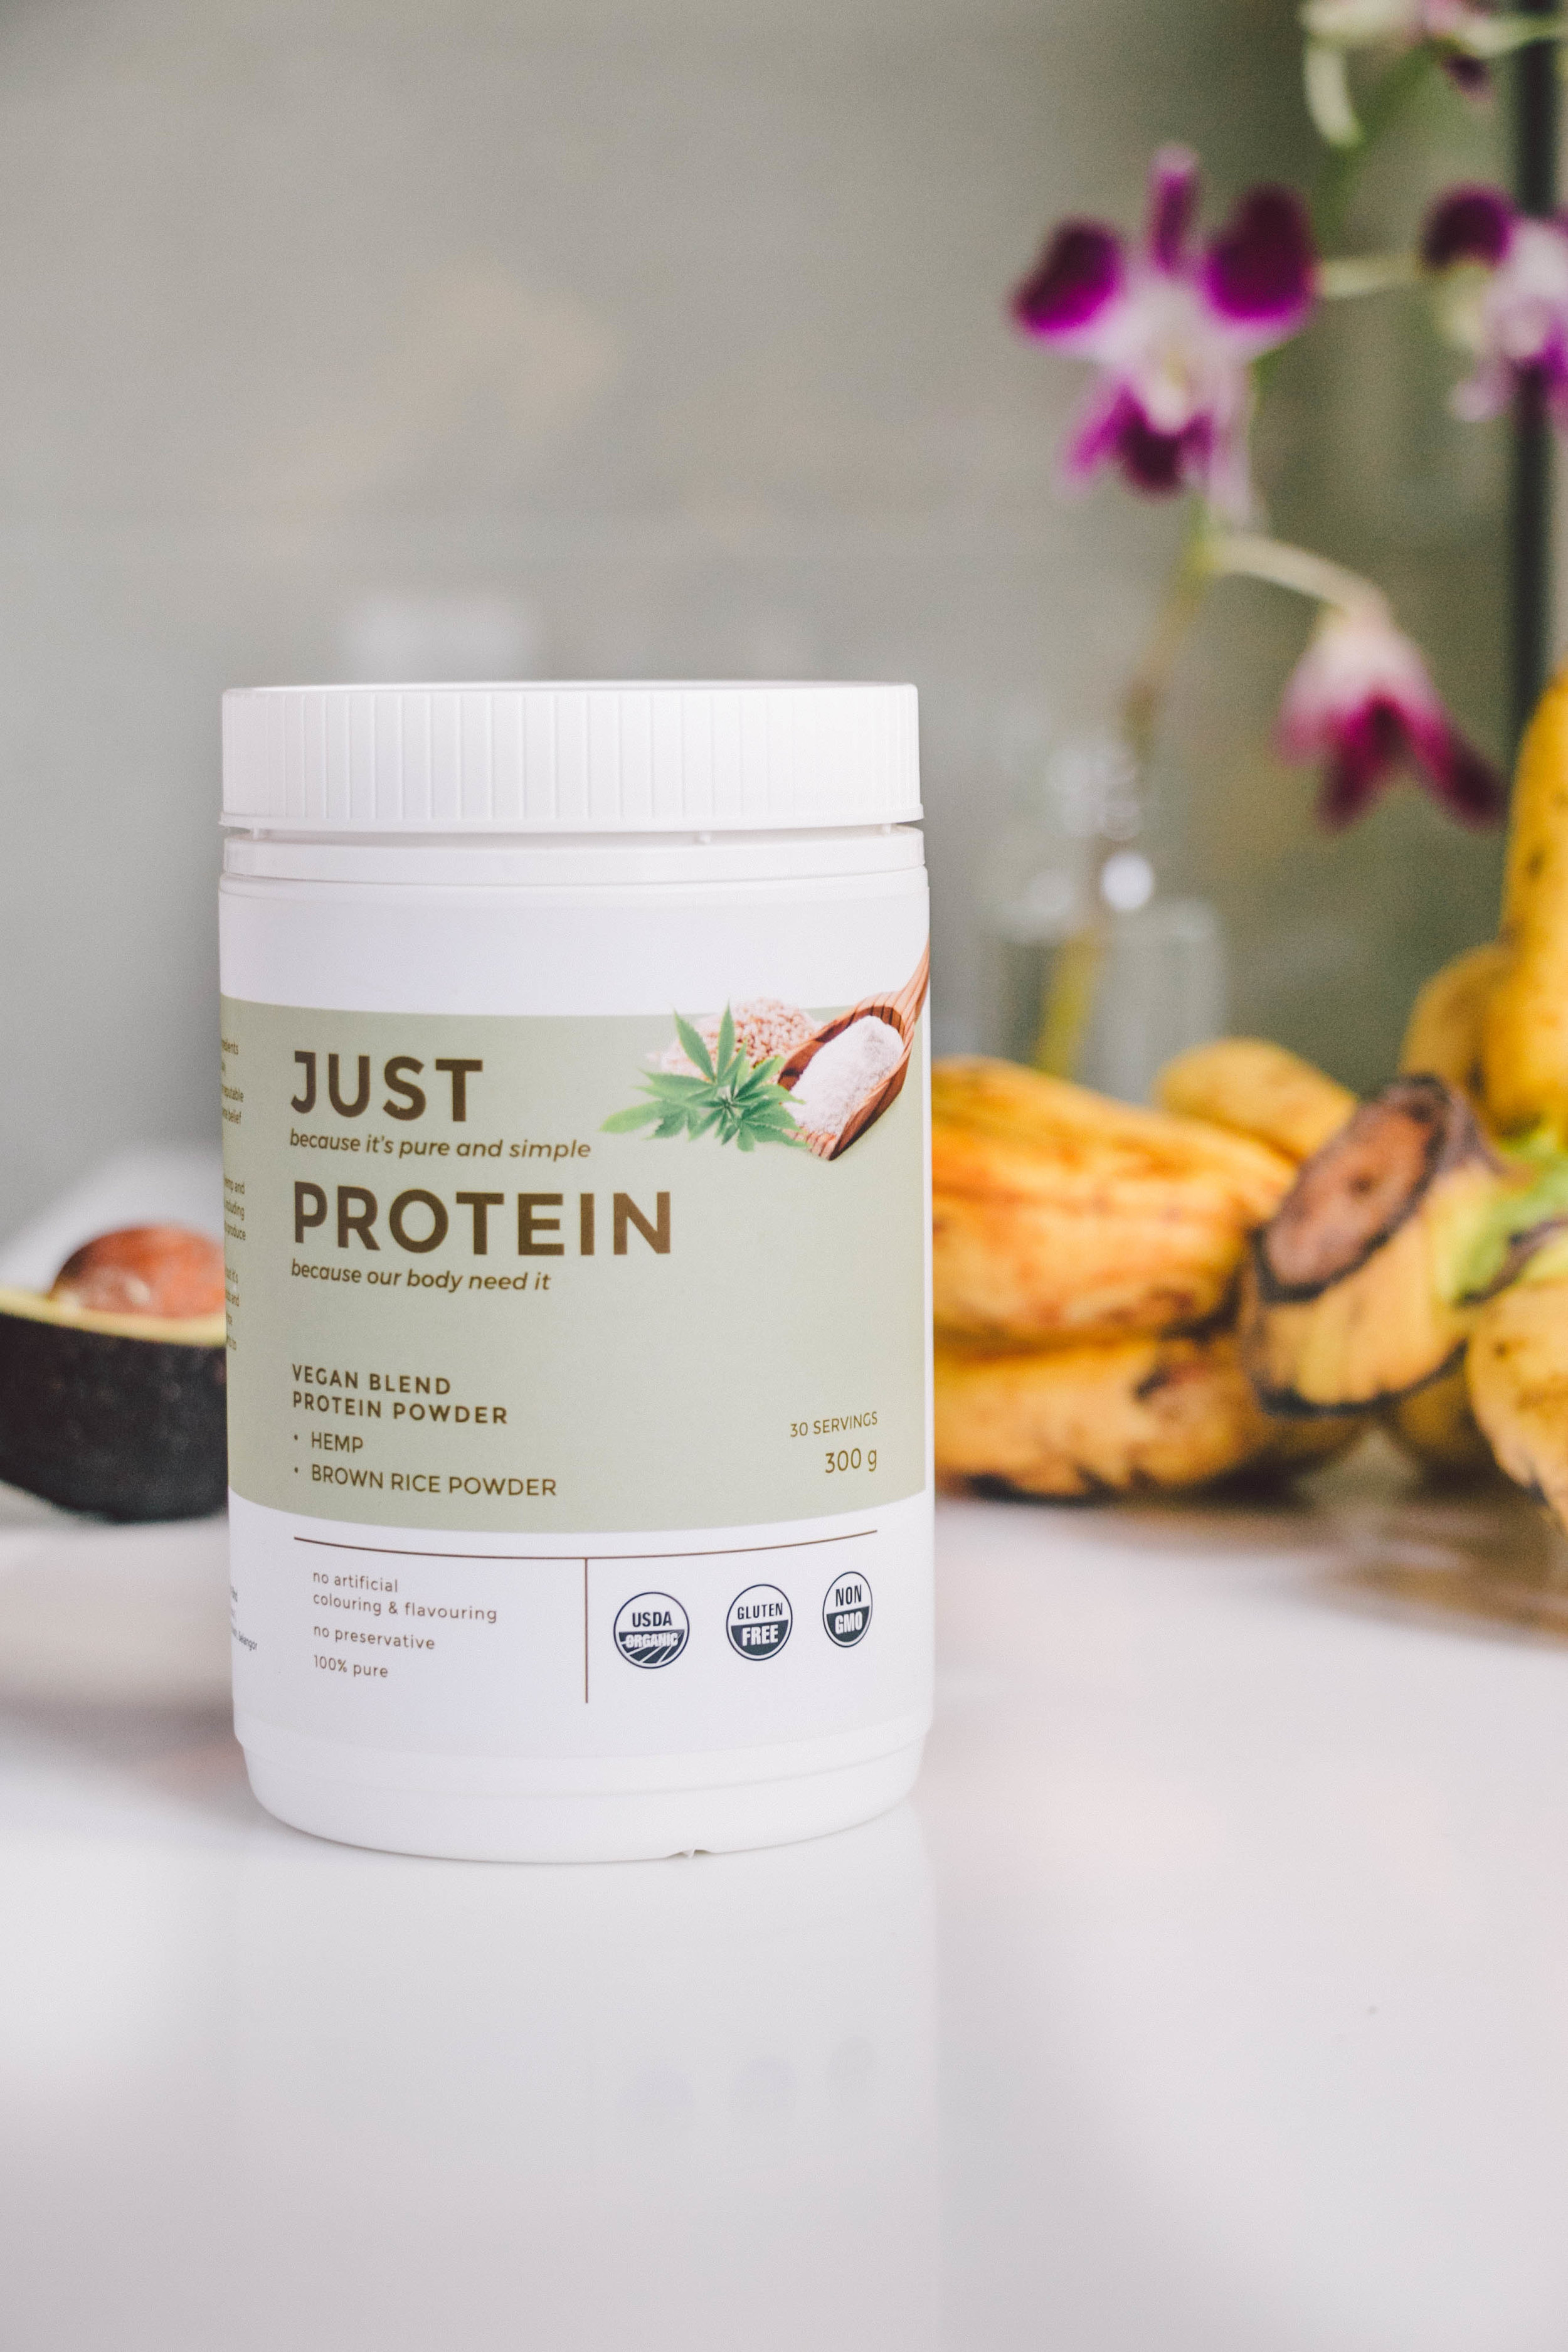 Get 10% off with my promo code: SSAYANG10 - Hemp & brown rice powder, spirulina, superfood powders that can be used as natural colouring—get these or any other powder from REA Superfoods and get a 10% discount with my promo code.